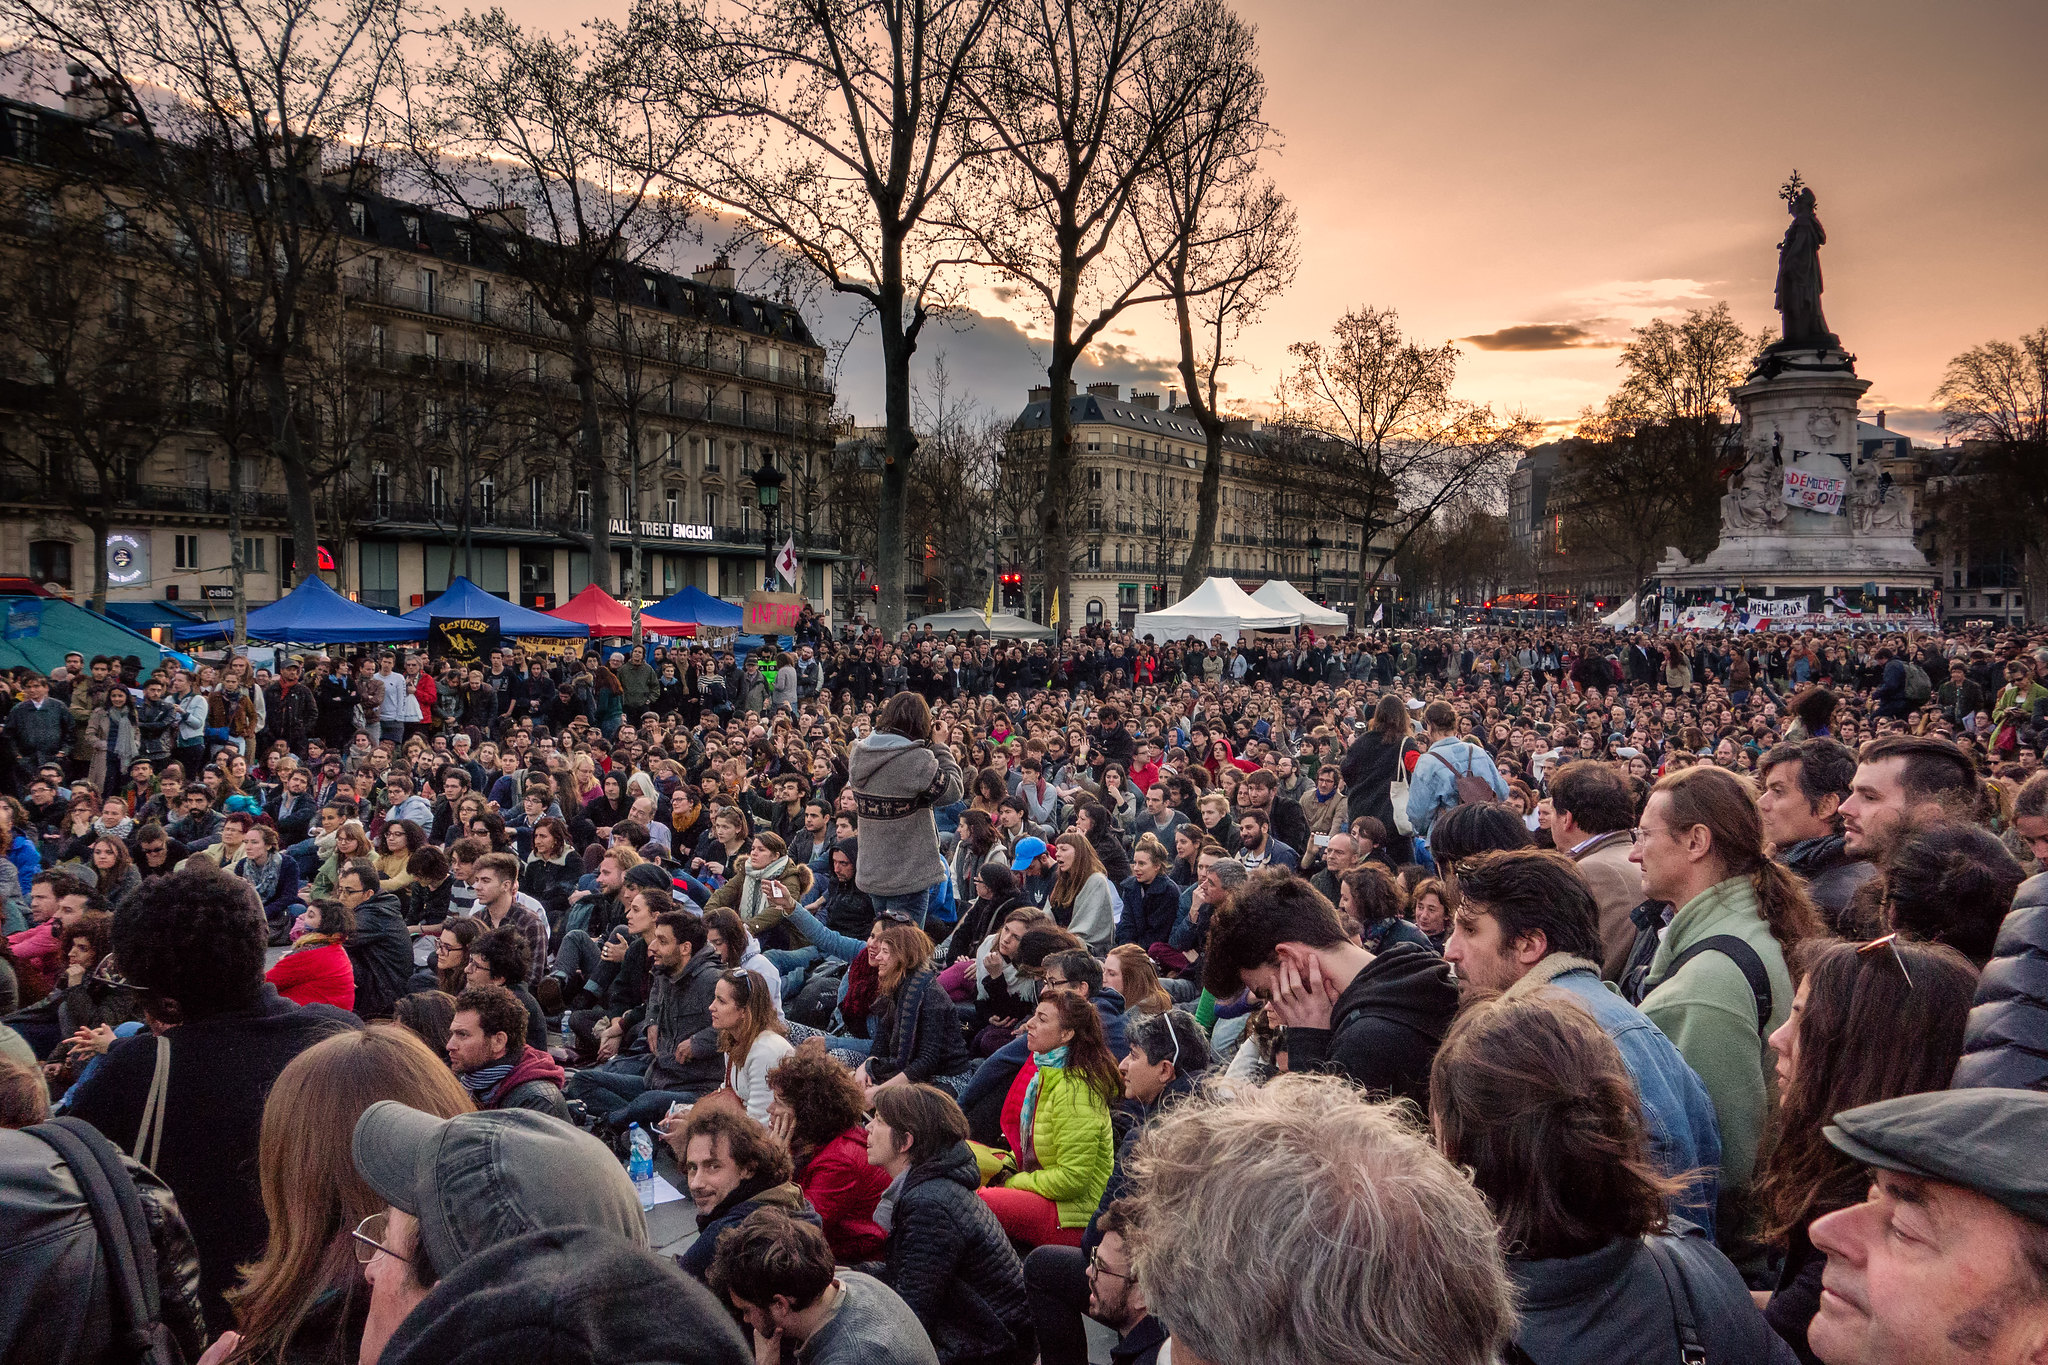 Crowd of people gathered on Place de la République in Paris listening to someone speaking